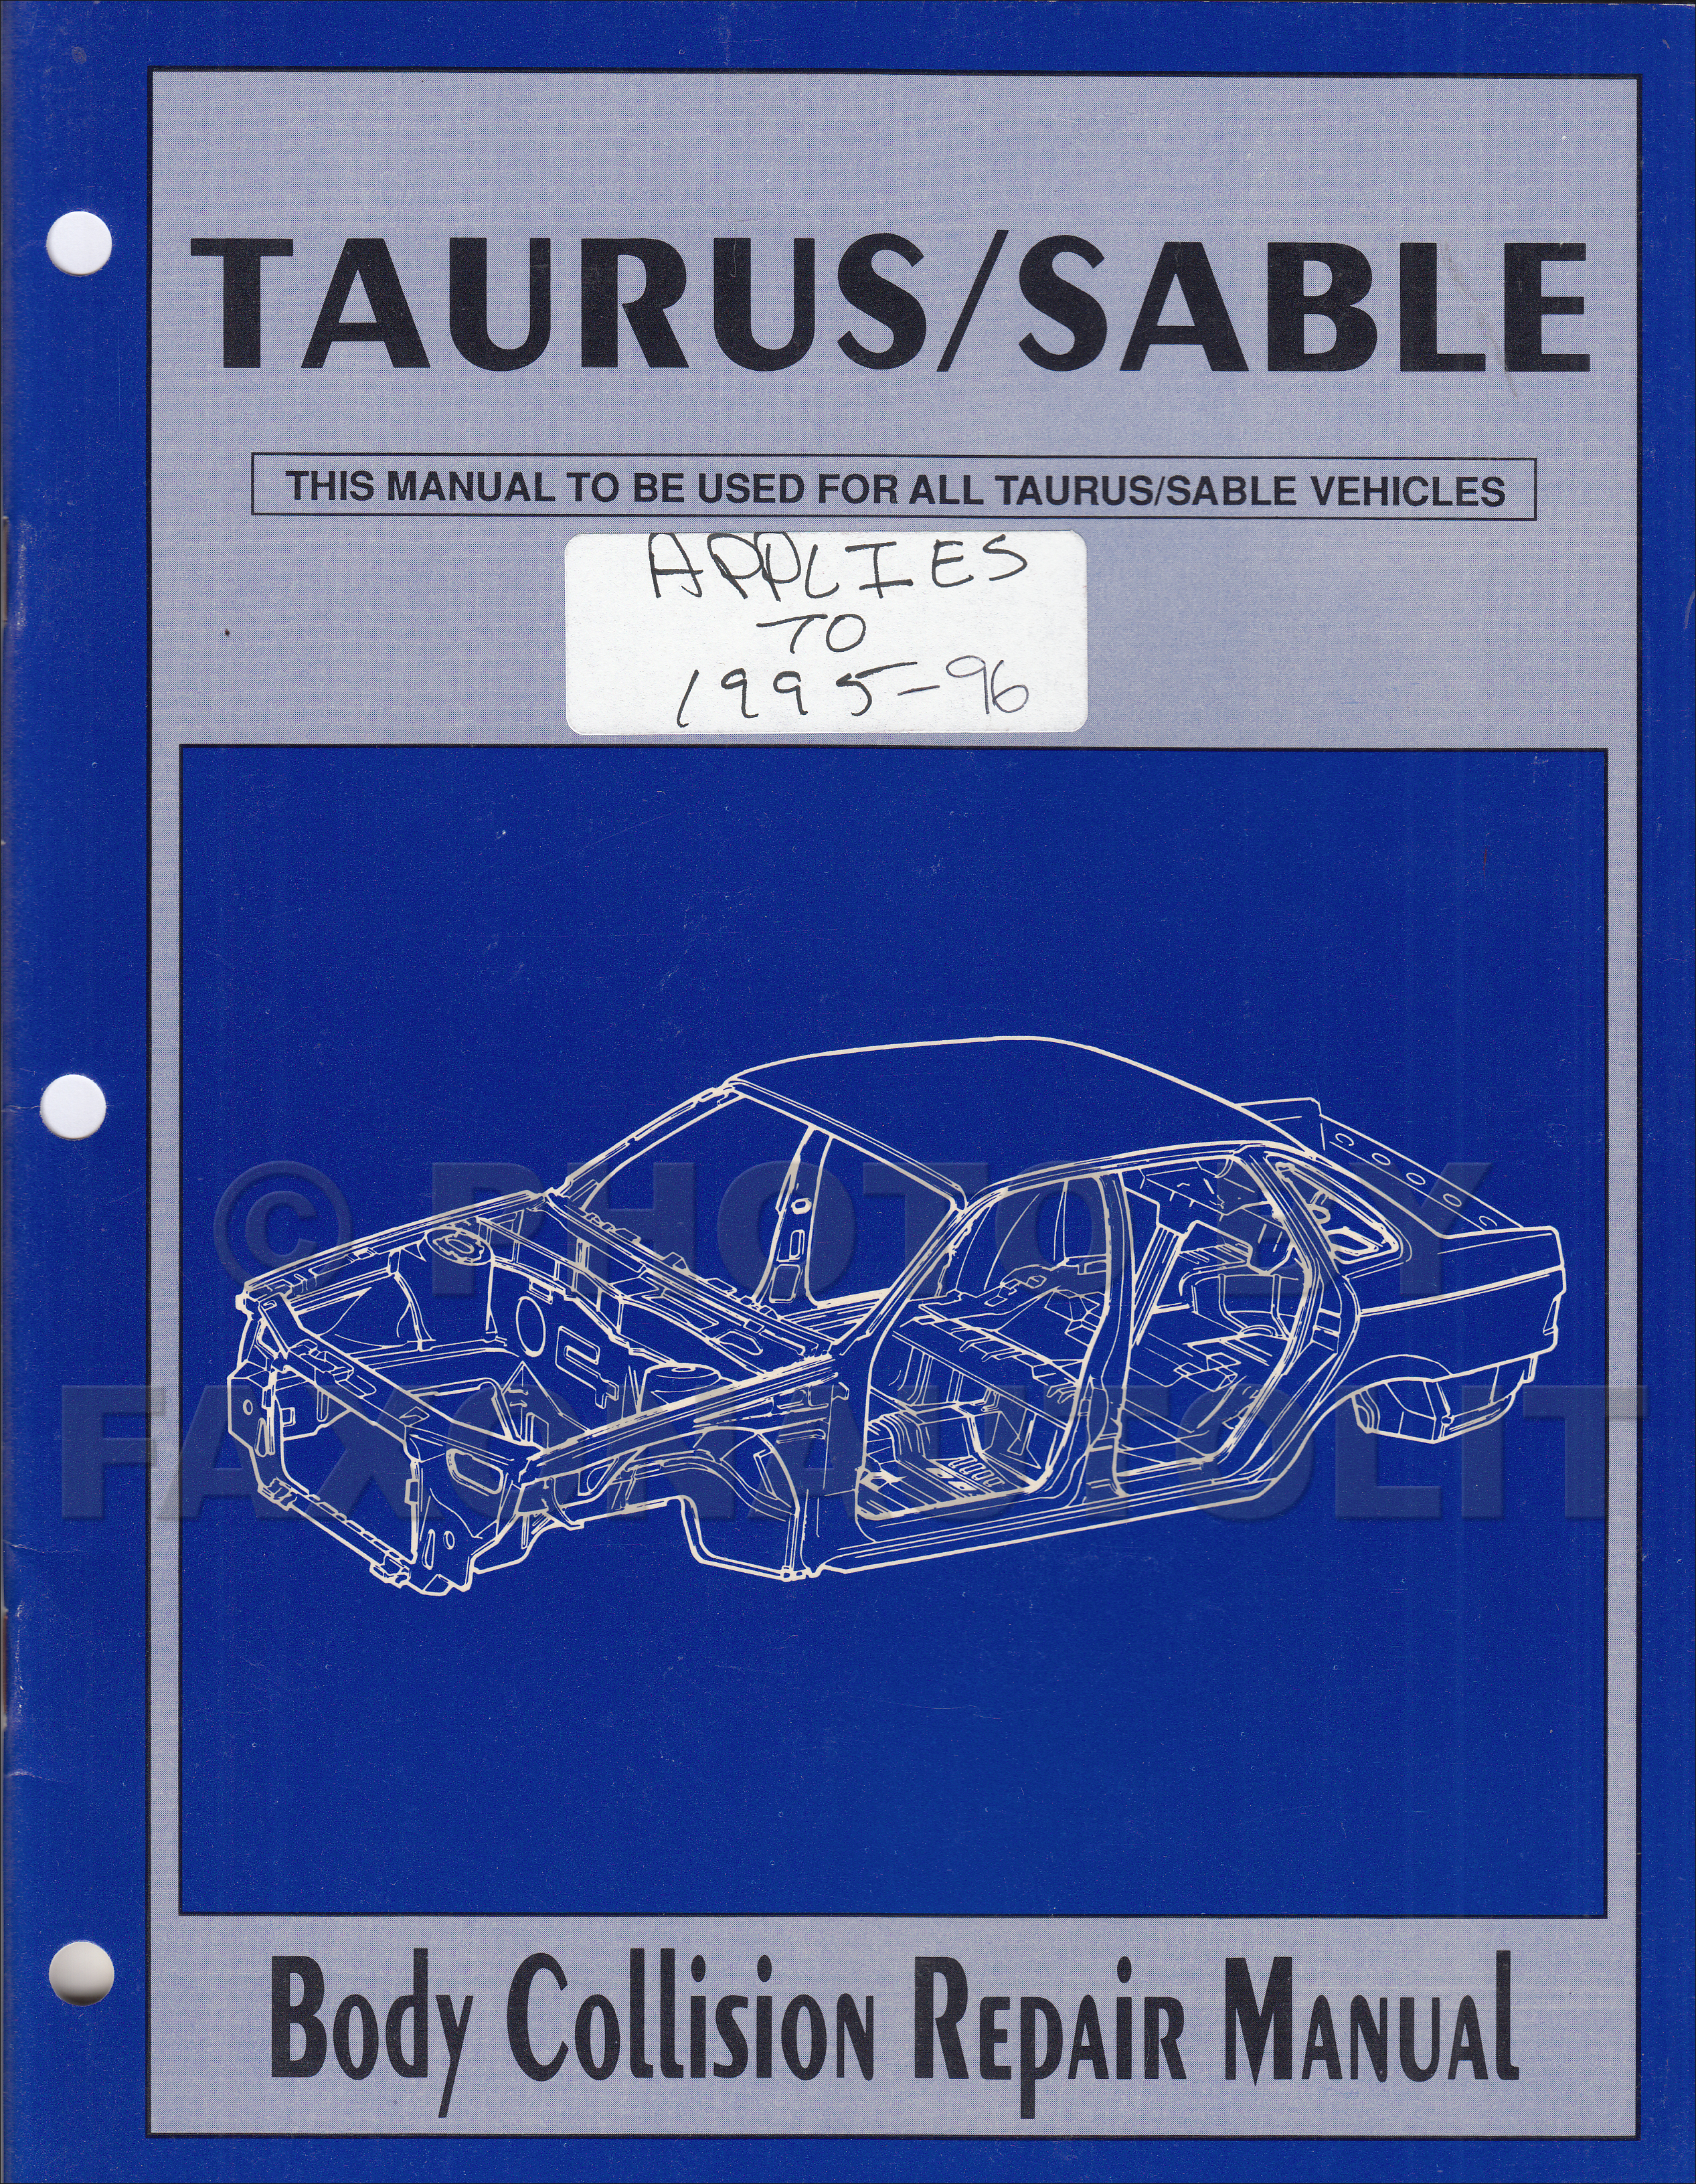 2002-2006 Toyota Camry Body Collision Repair Manual Original · 1986-1996 Ford  Taurus/Mercury Sable ...